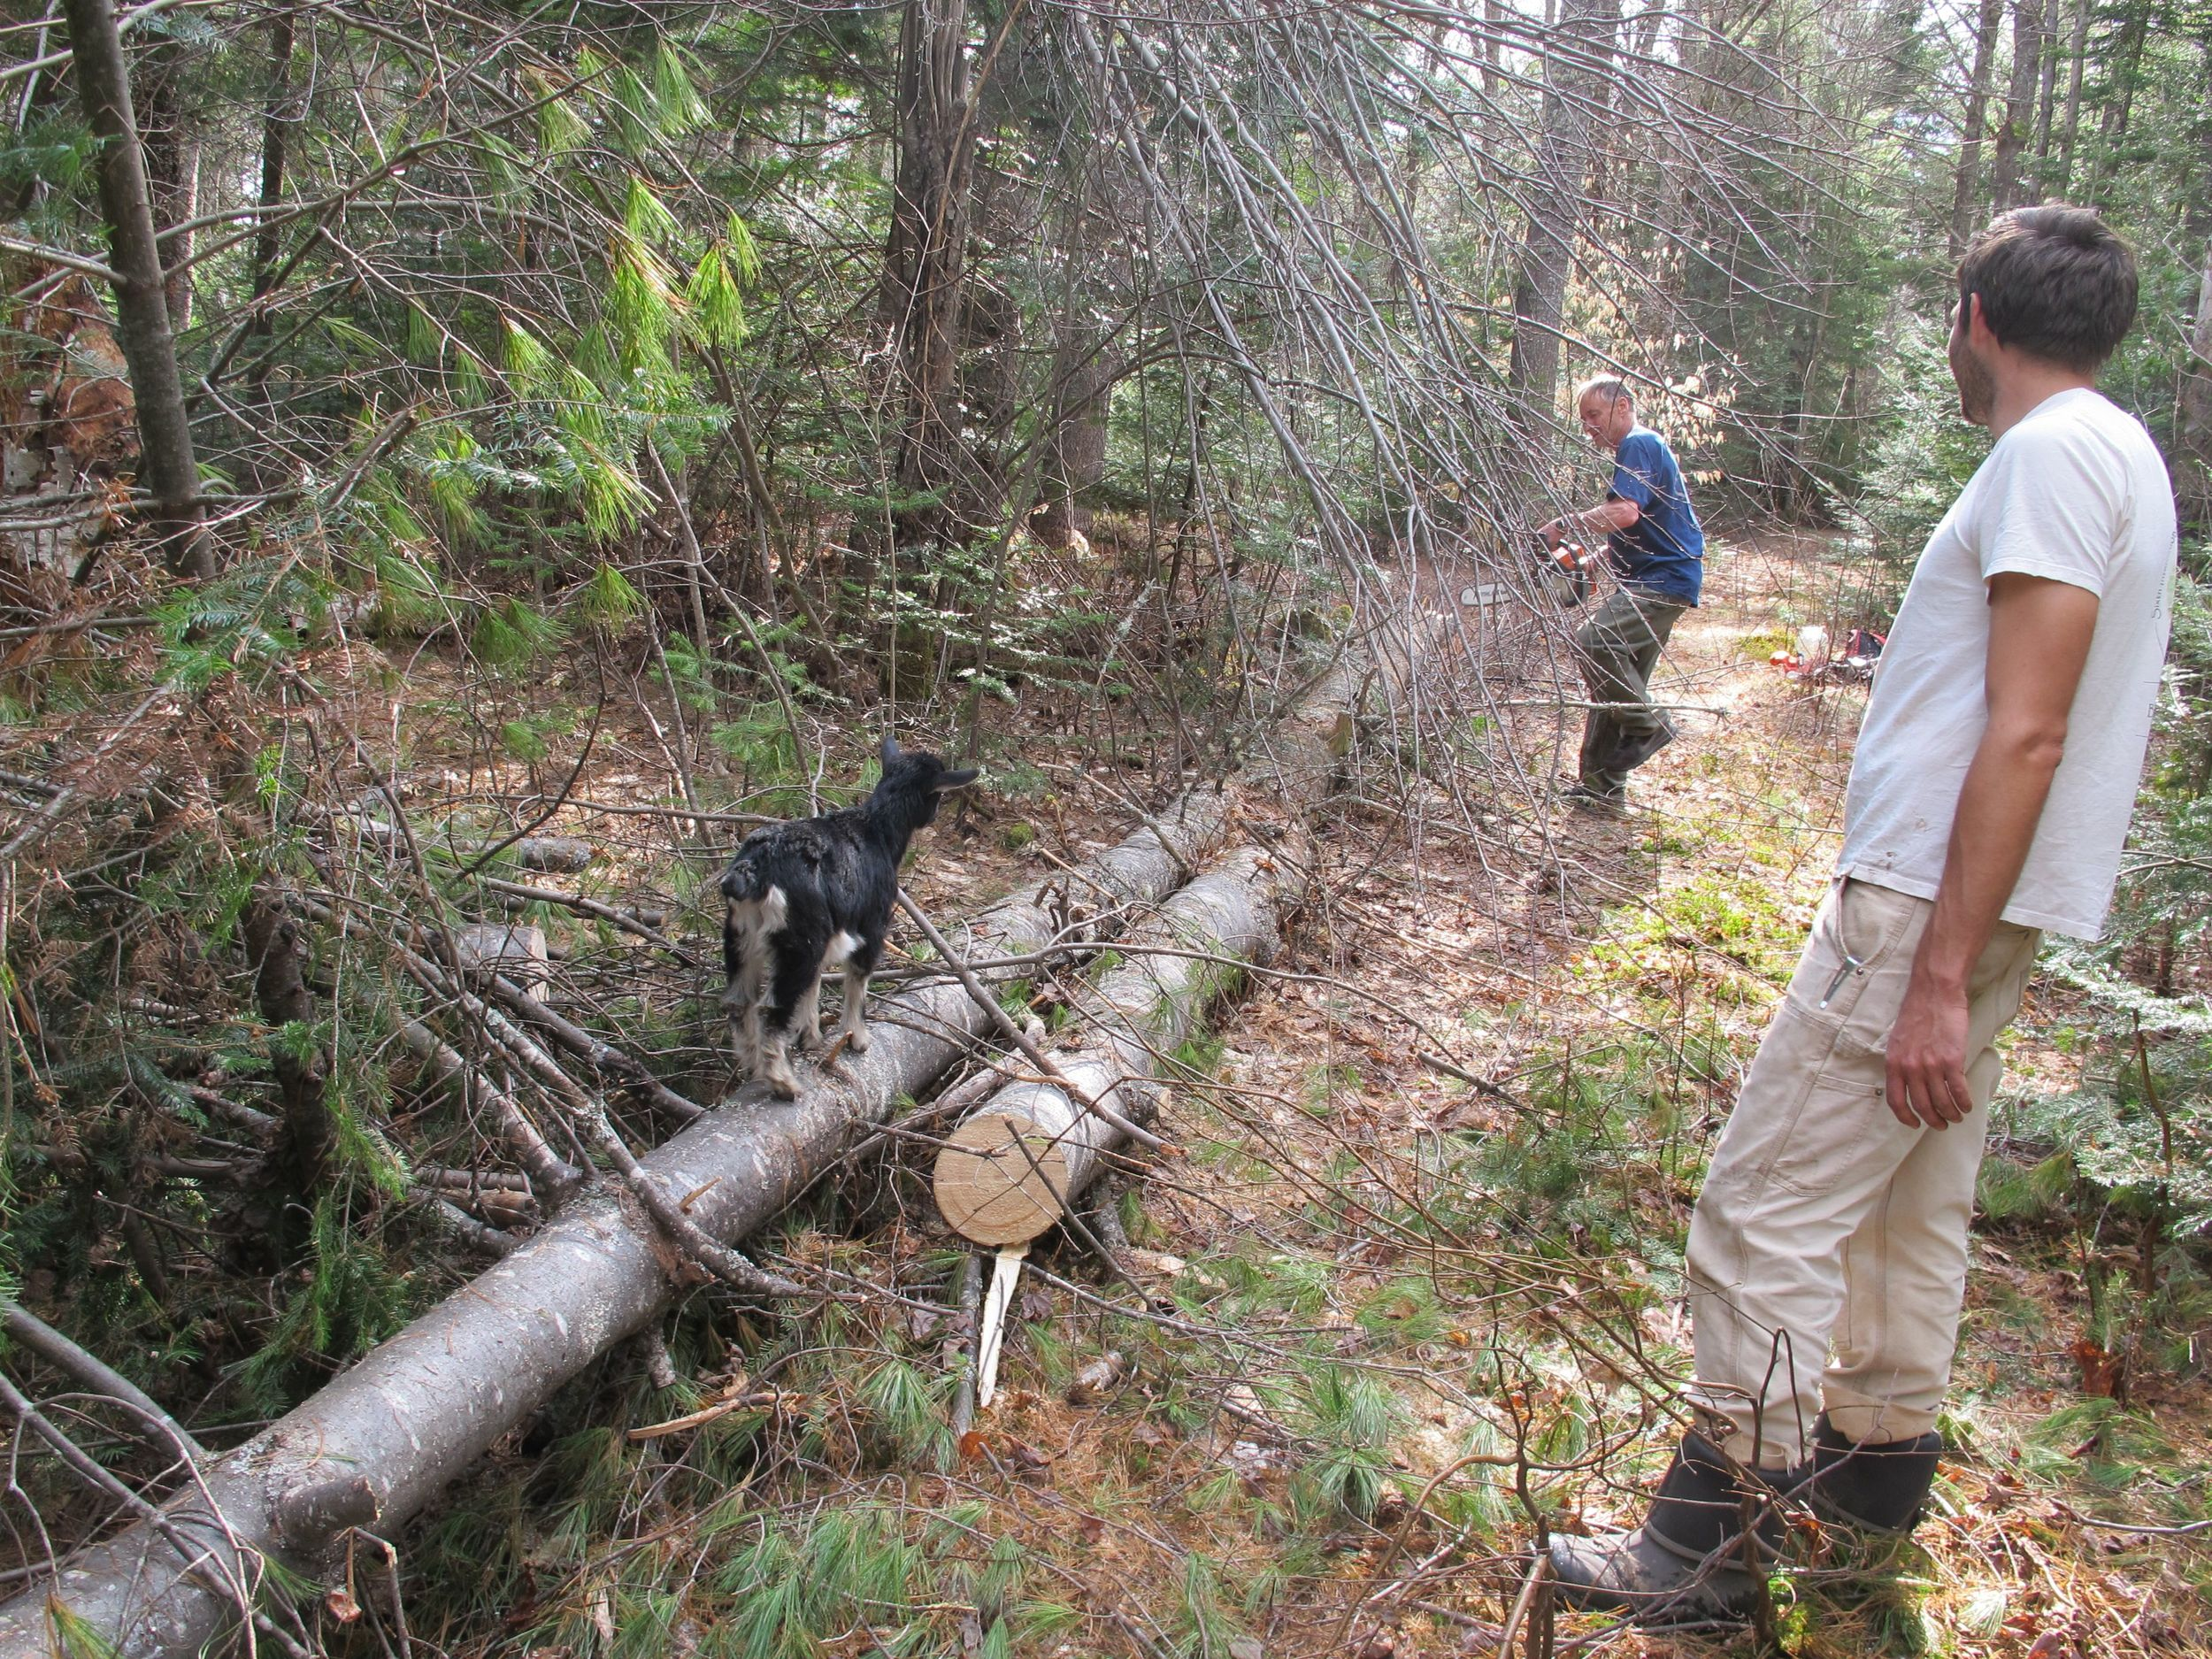 Marcelene was steady afoot as she watched Bernd cut up a downed white pine that was blocking a roadway into the woods.